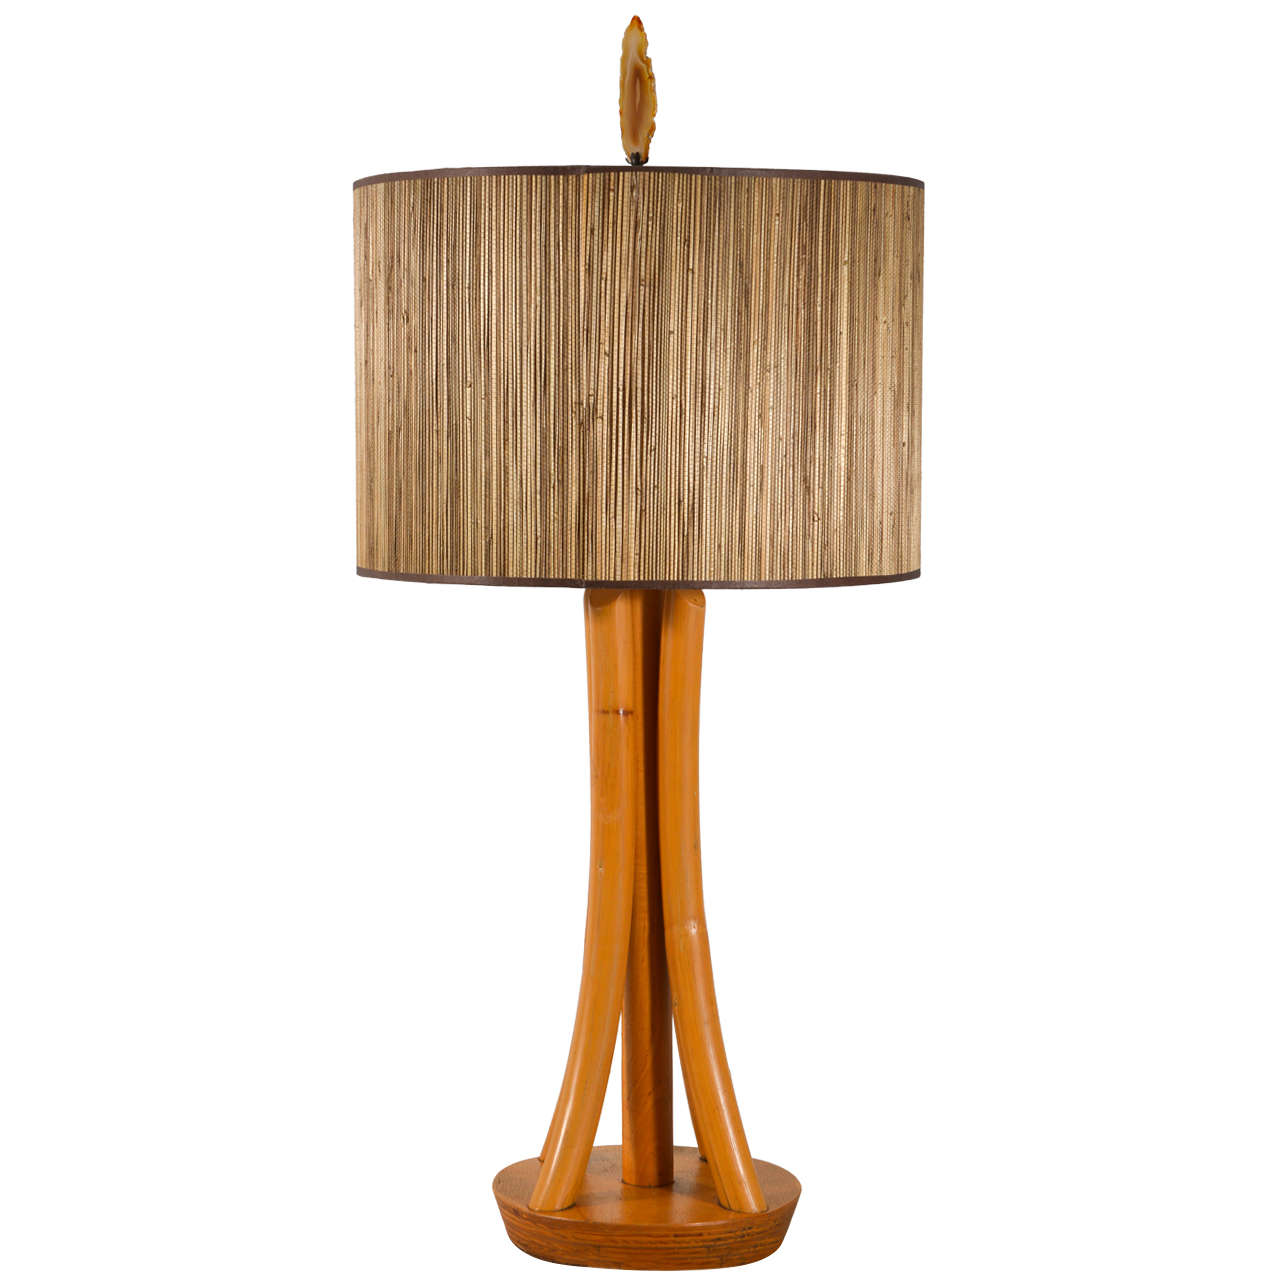 Thonet Style 1950s Bentwood Table L& For Sale  sc 1 st  1stDibs & Thonet Style 1950s Bentwood Table Lamp For Sale at 1stdibs